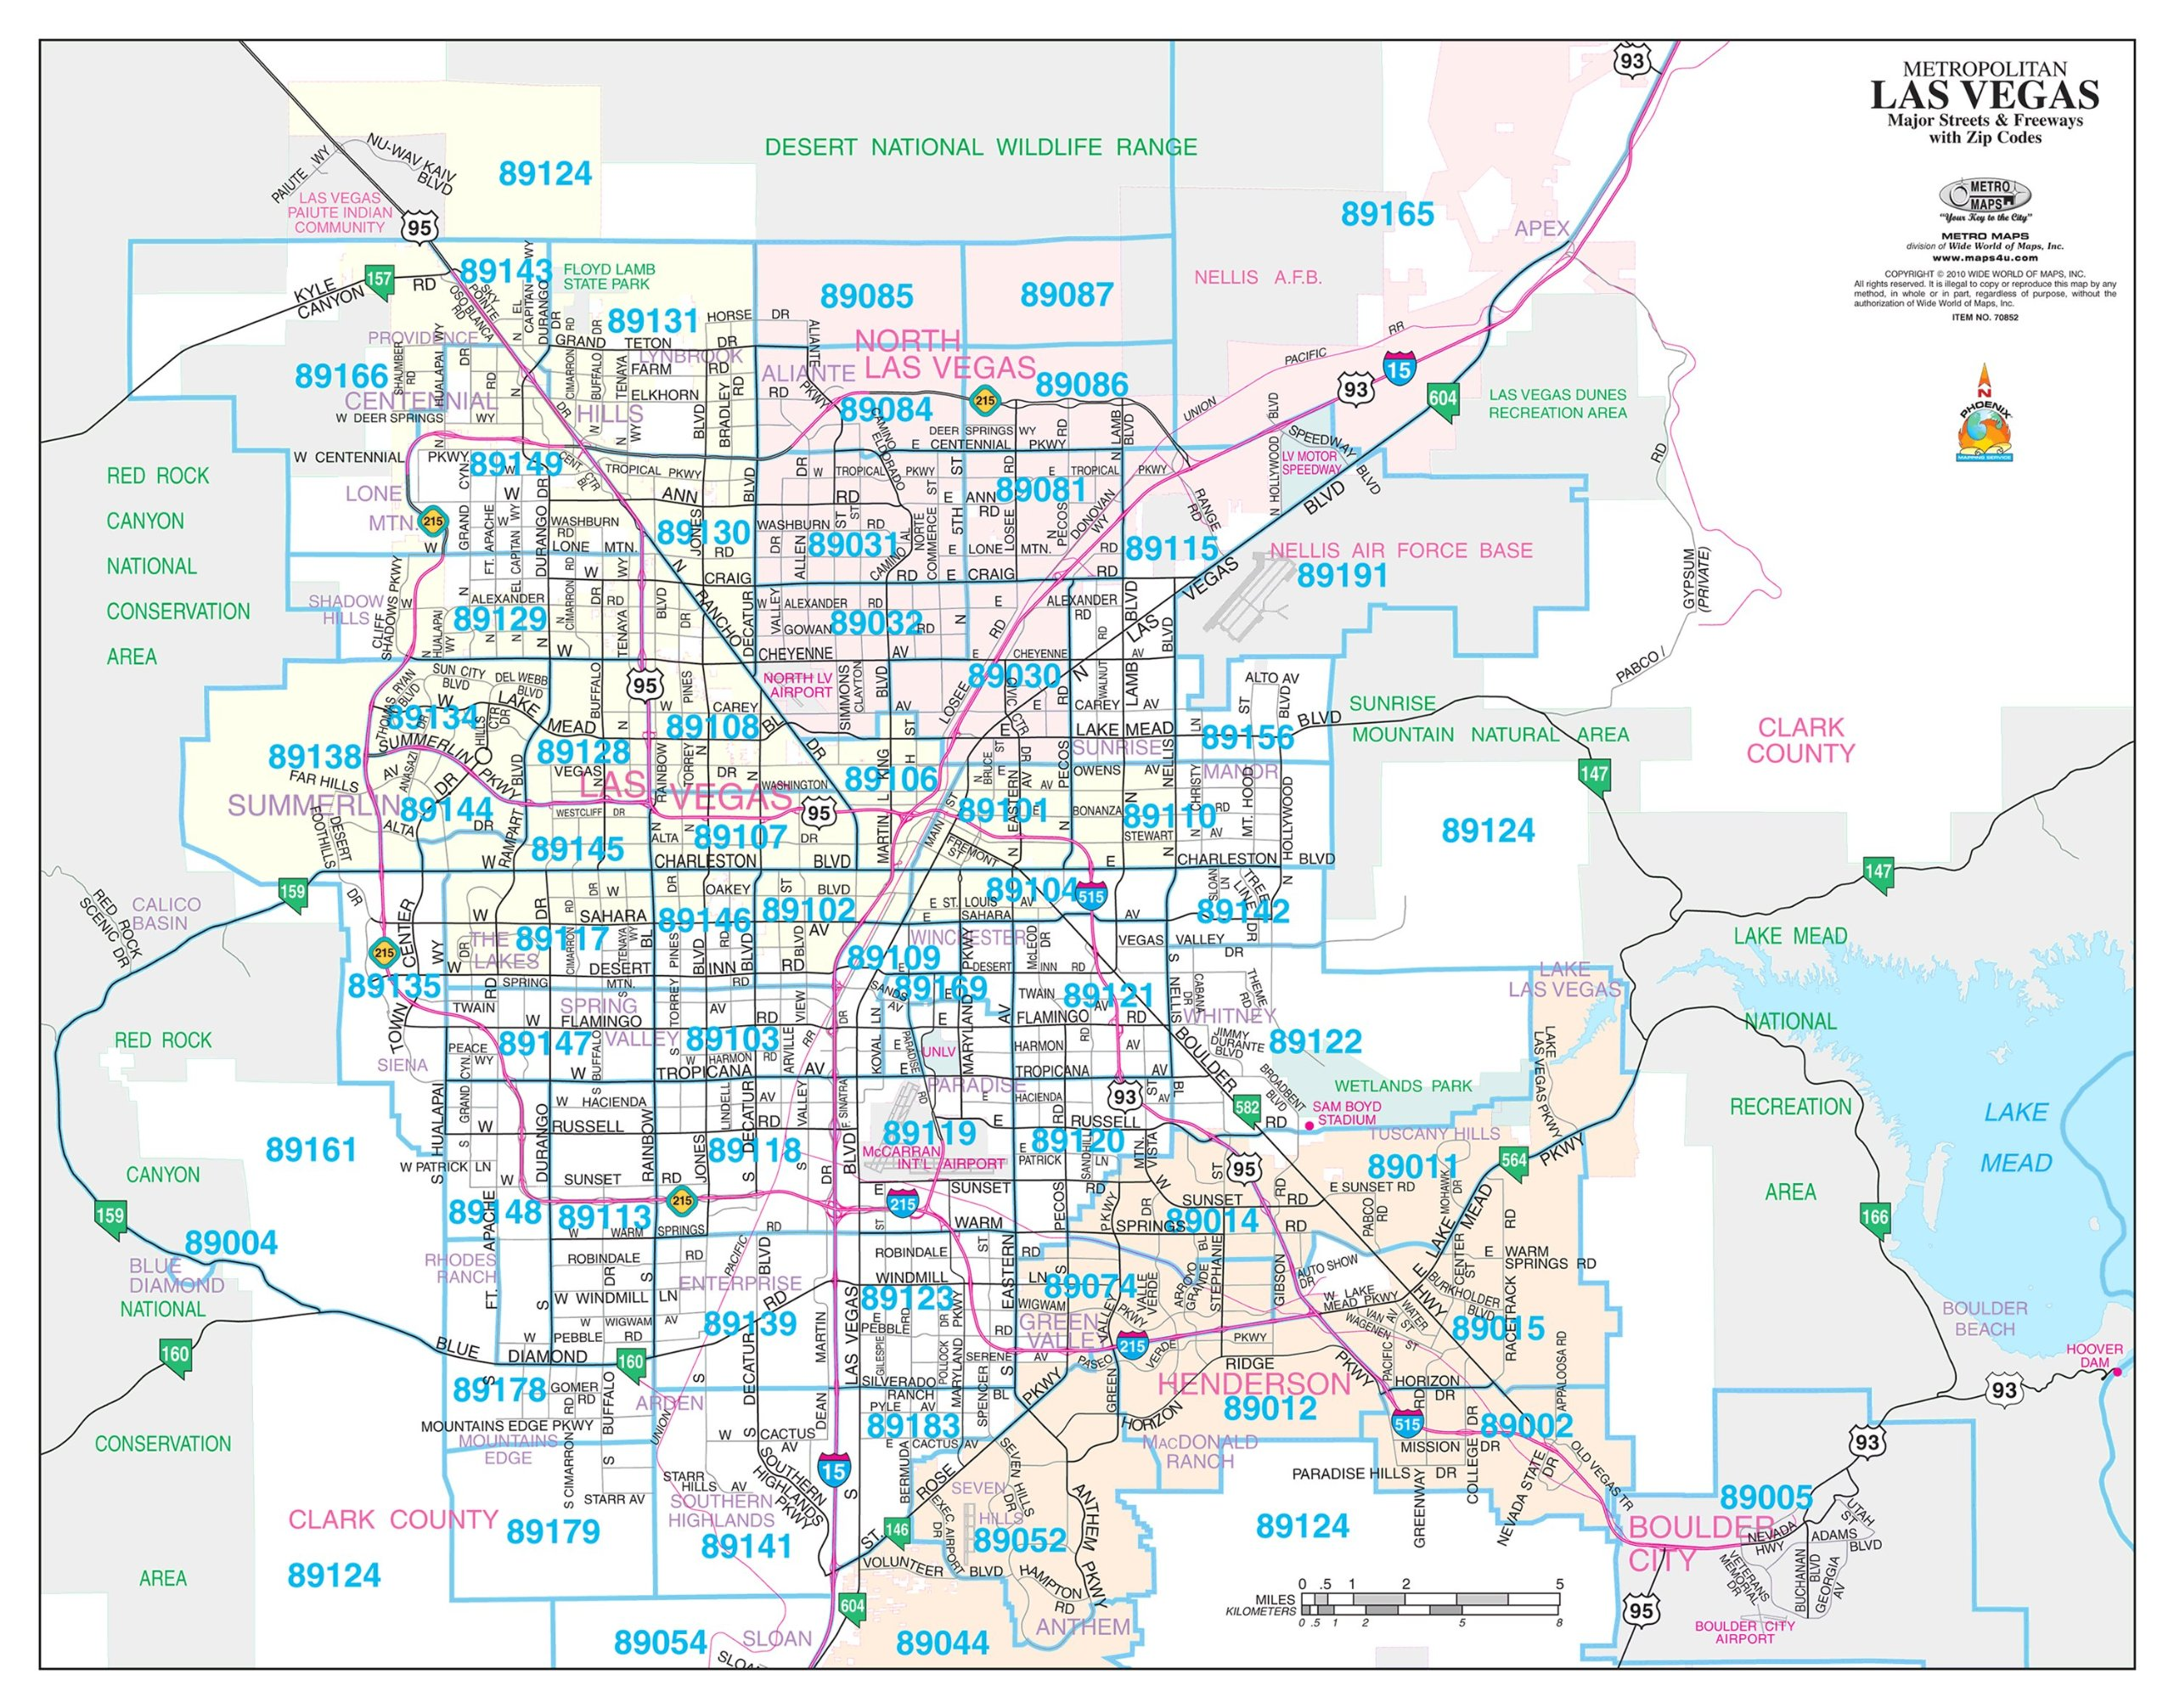 North Las Vegas Map Boundaries.Metropolitan Las Vegas Major Streets Freeways With Zip Codes Desk